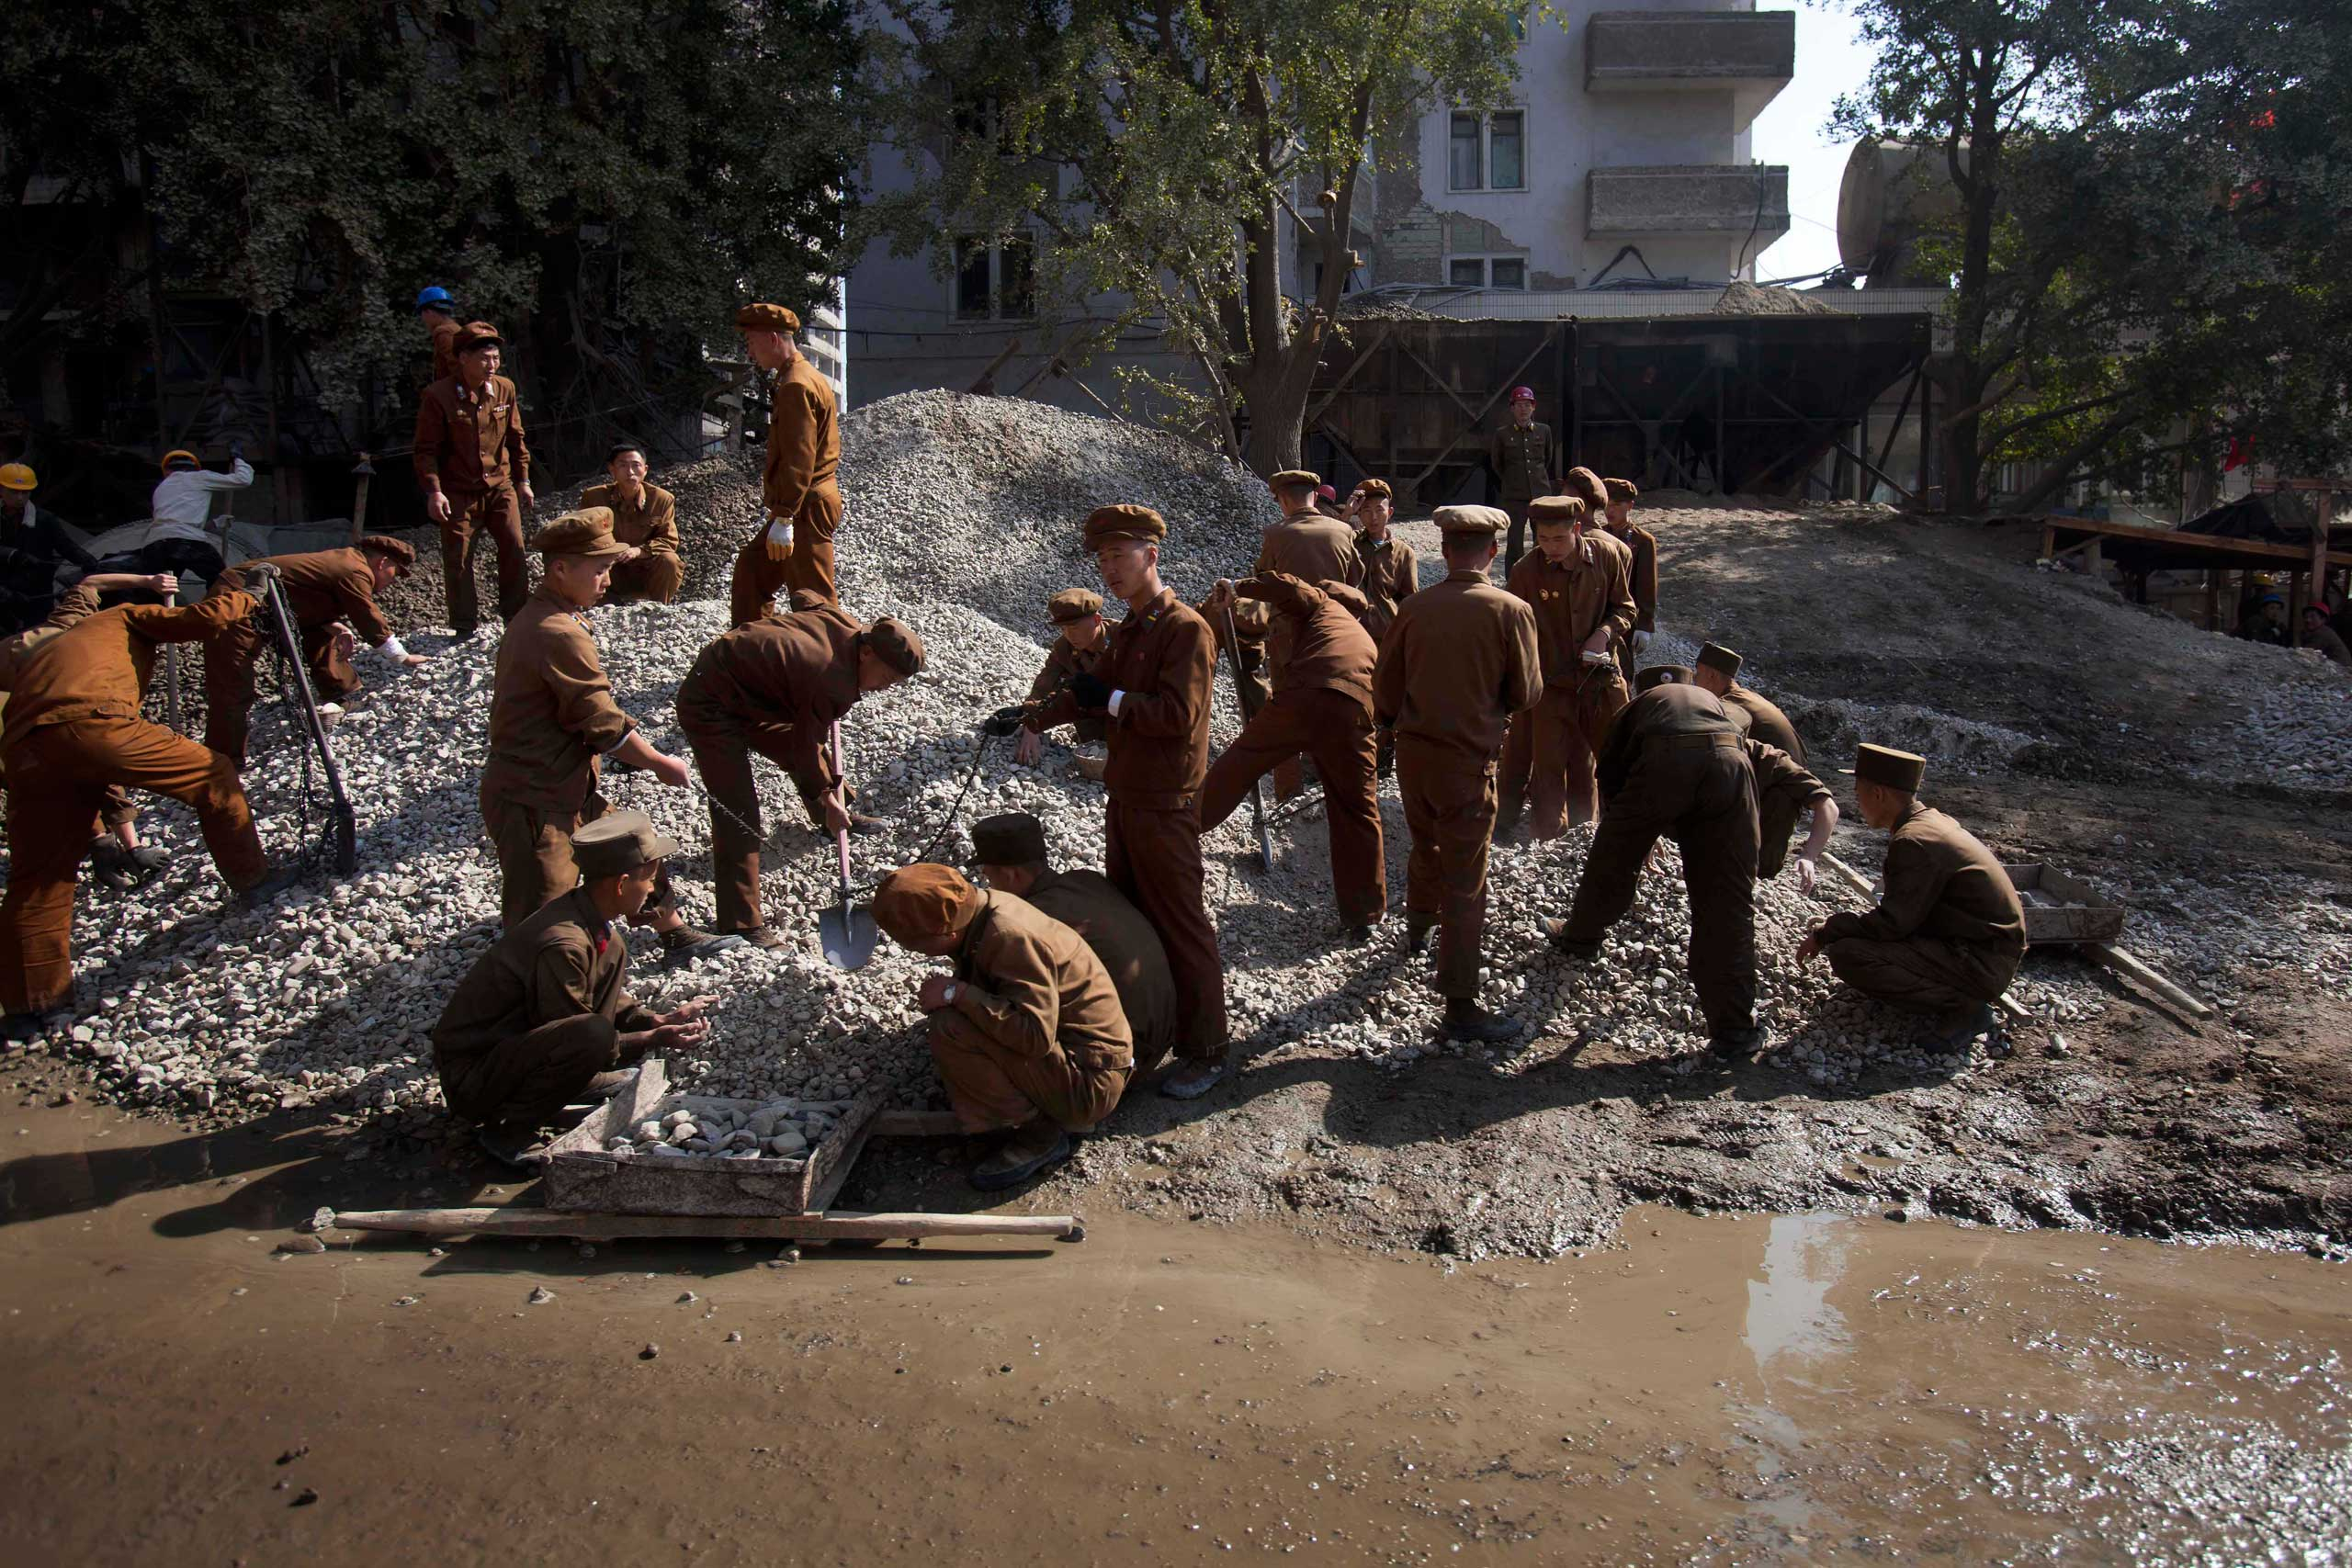 Oct. 11, 2011. North Korean construction workers labor in the Mansudae area of Pyongyang.